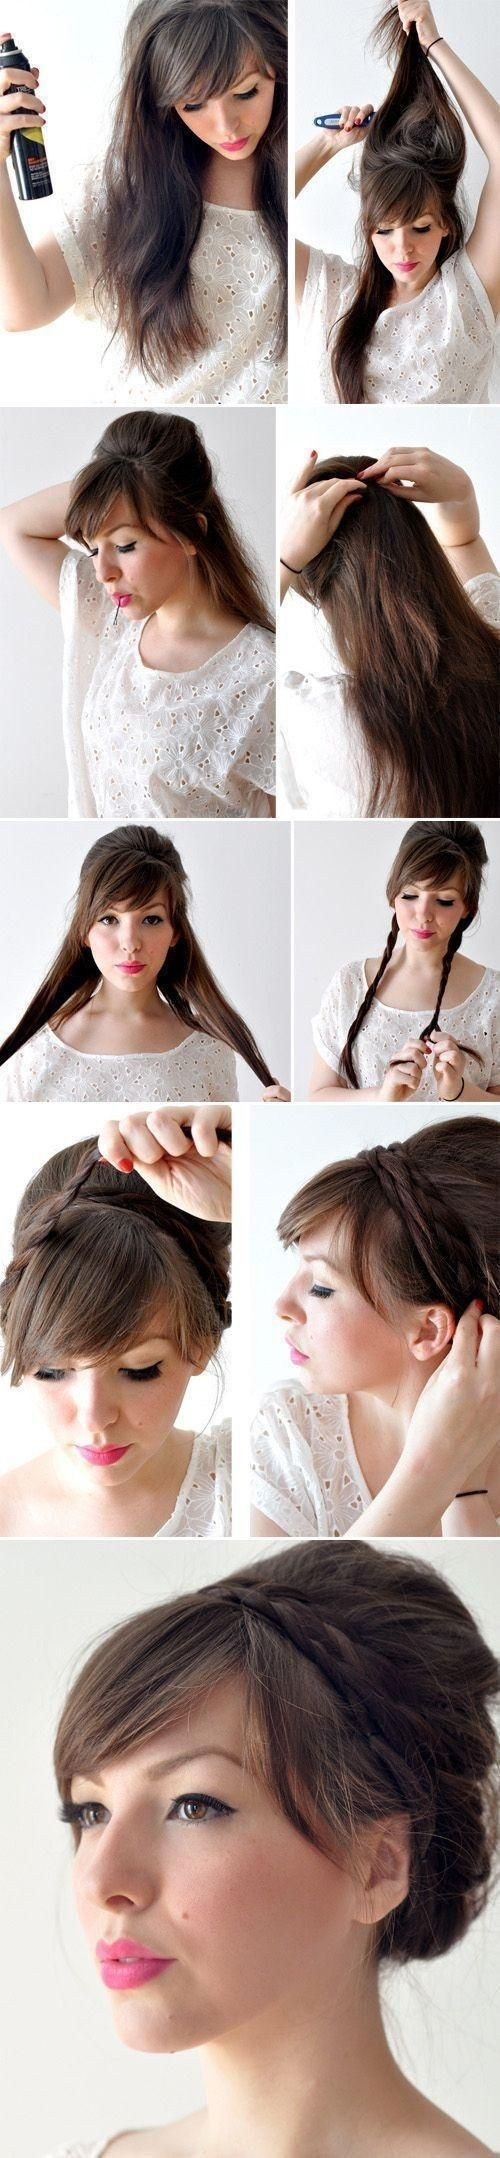 best 25+ disney hairstyles ideas on pinterest | disney hair